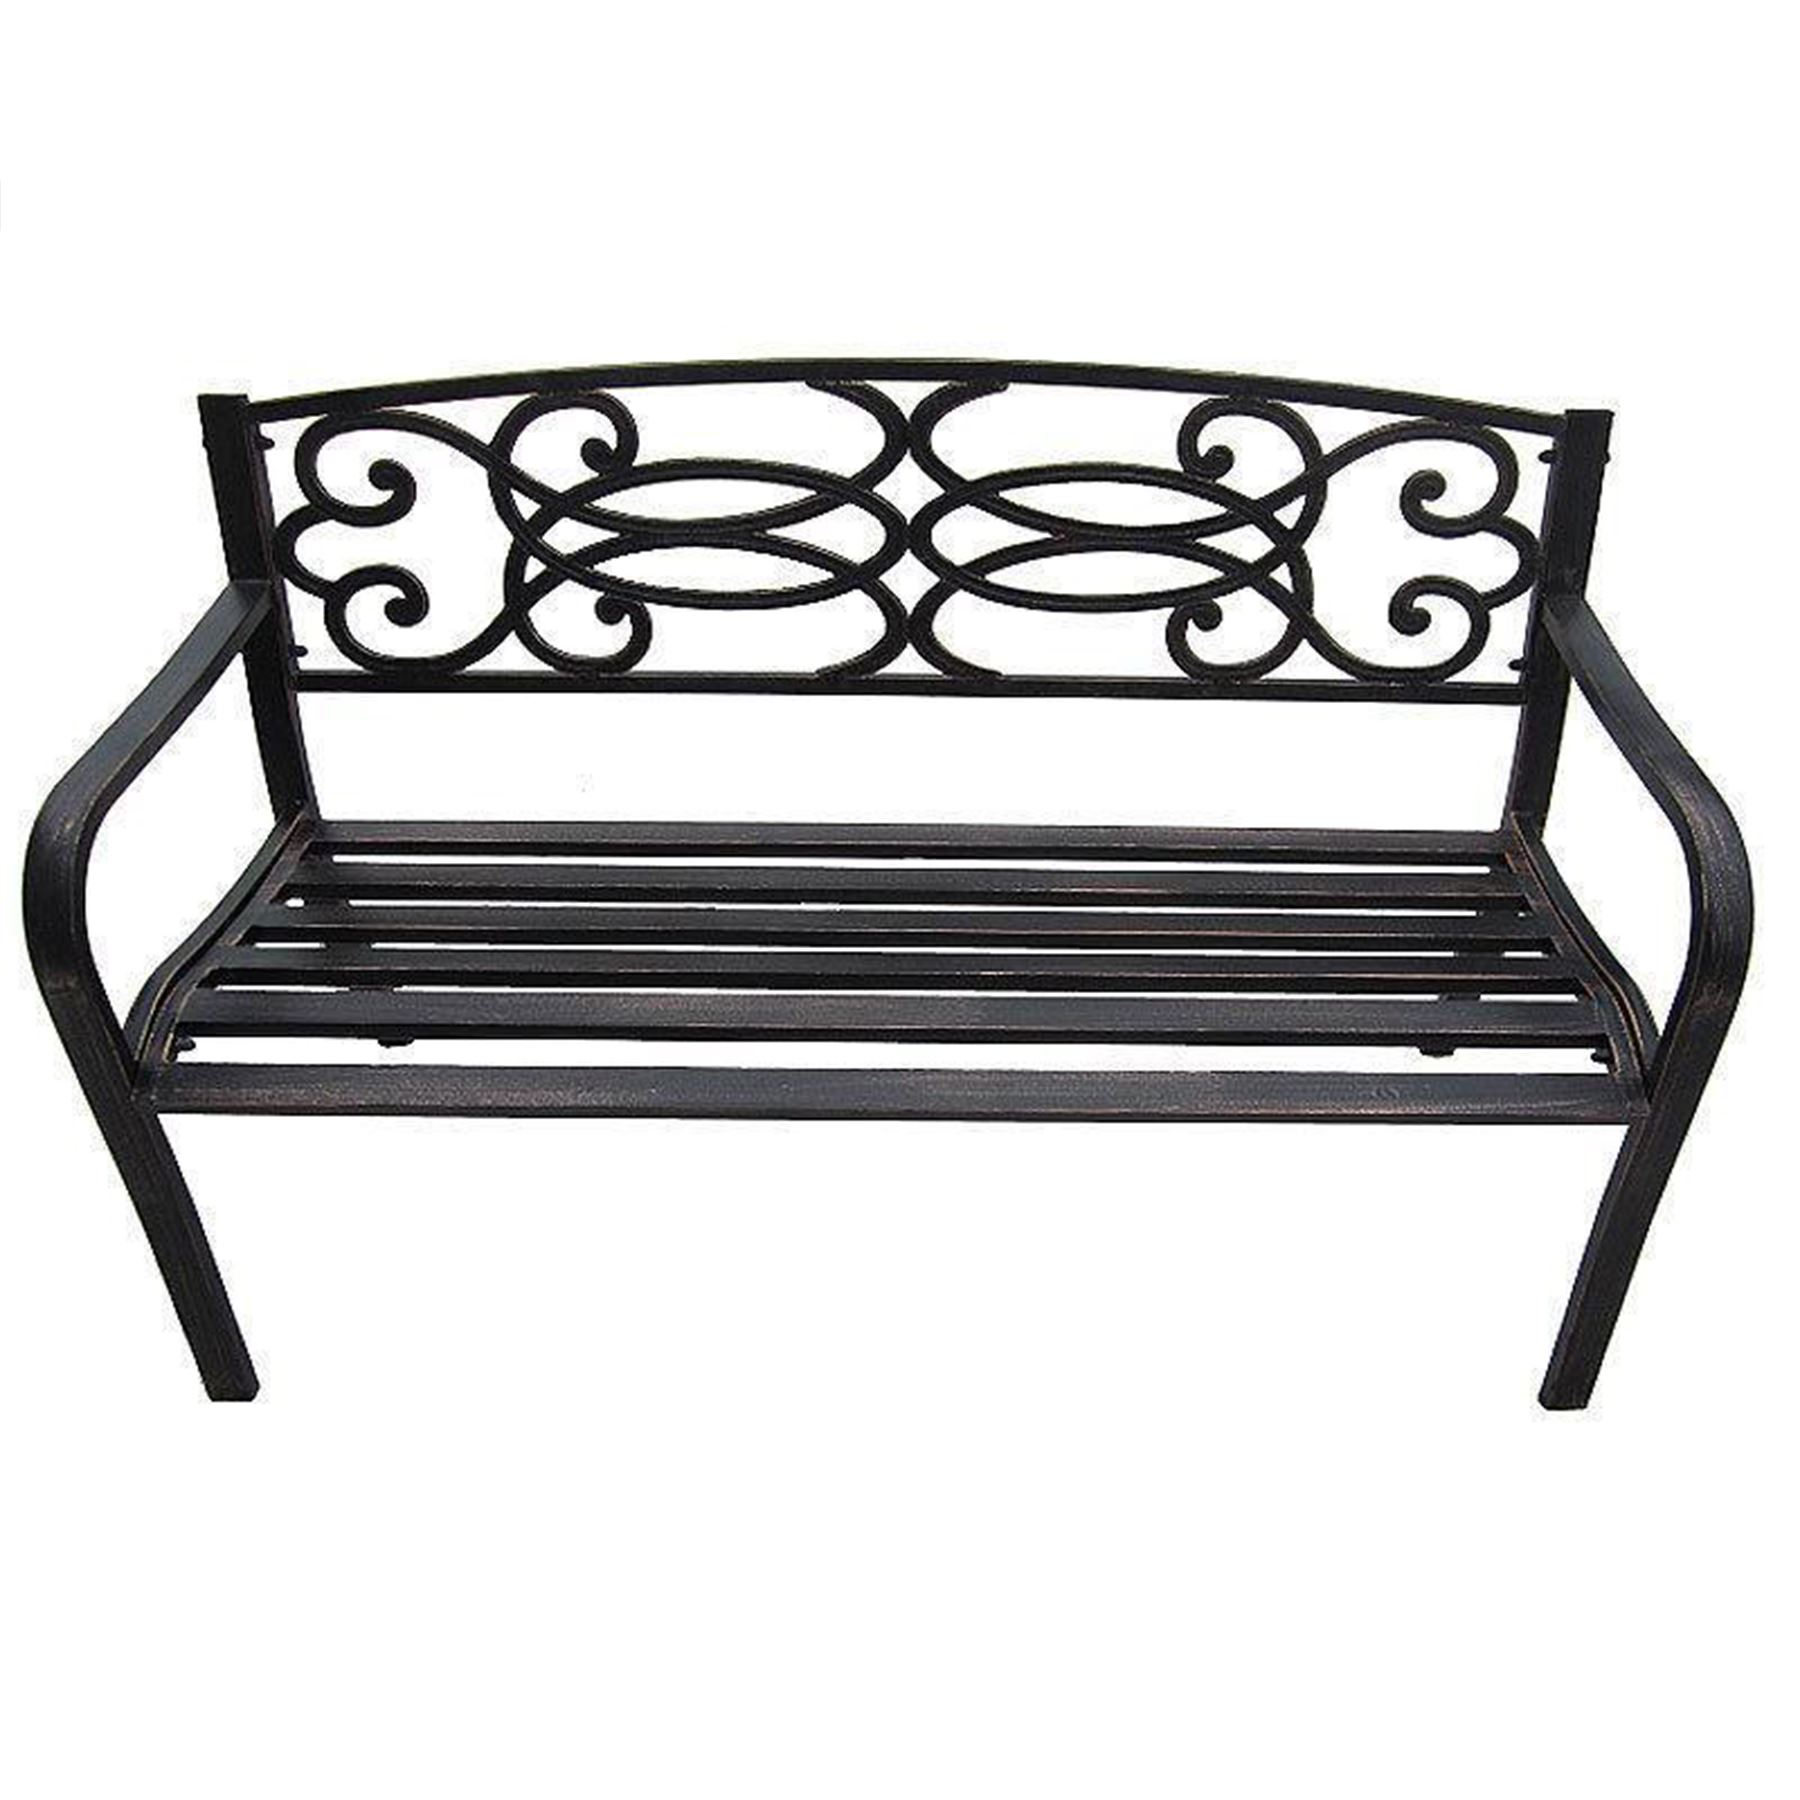 Garden Bench 3 Seater Outdoor Home Patio Furniture Wooden Metal Legs Lattice  eBay